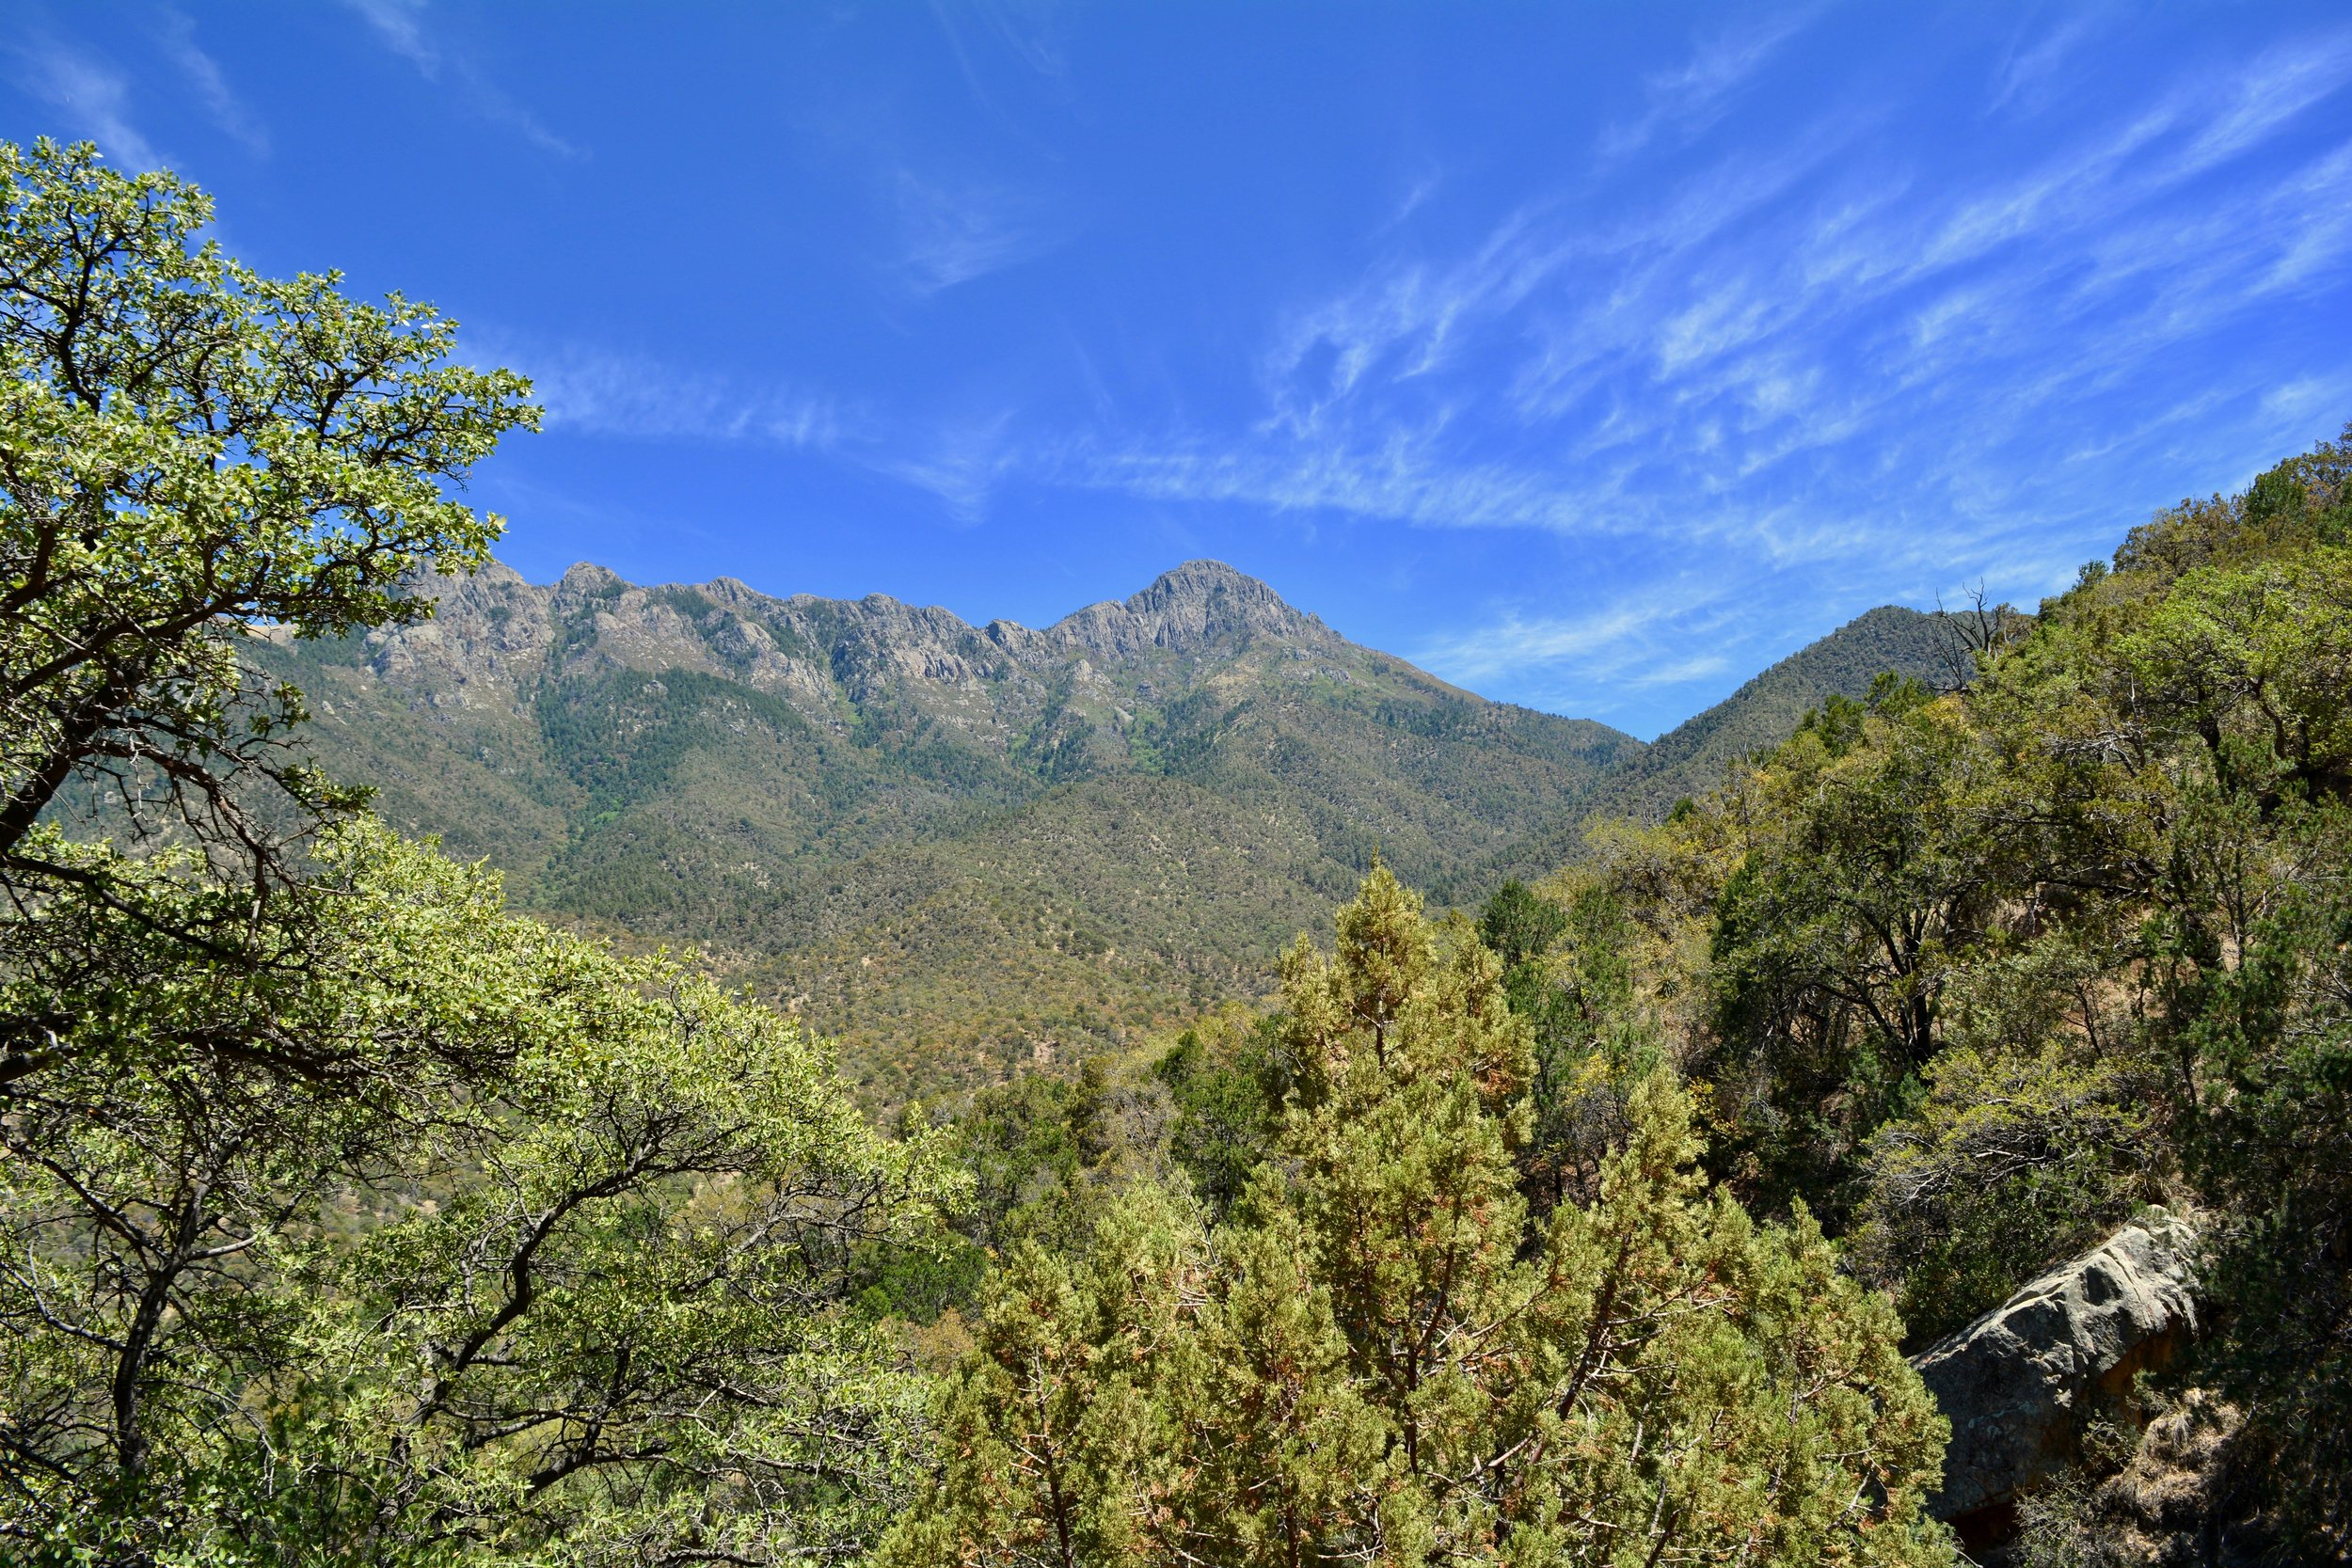 View from the trail at Madera Canyon